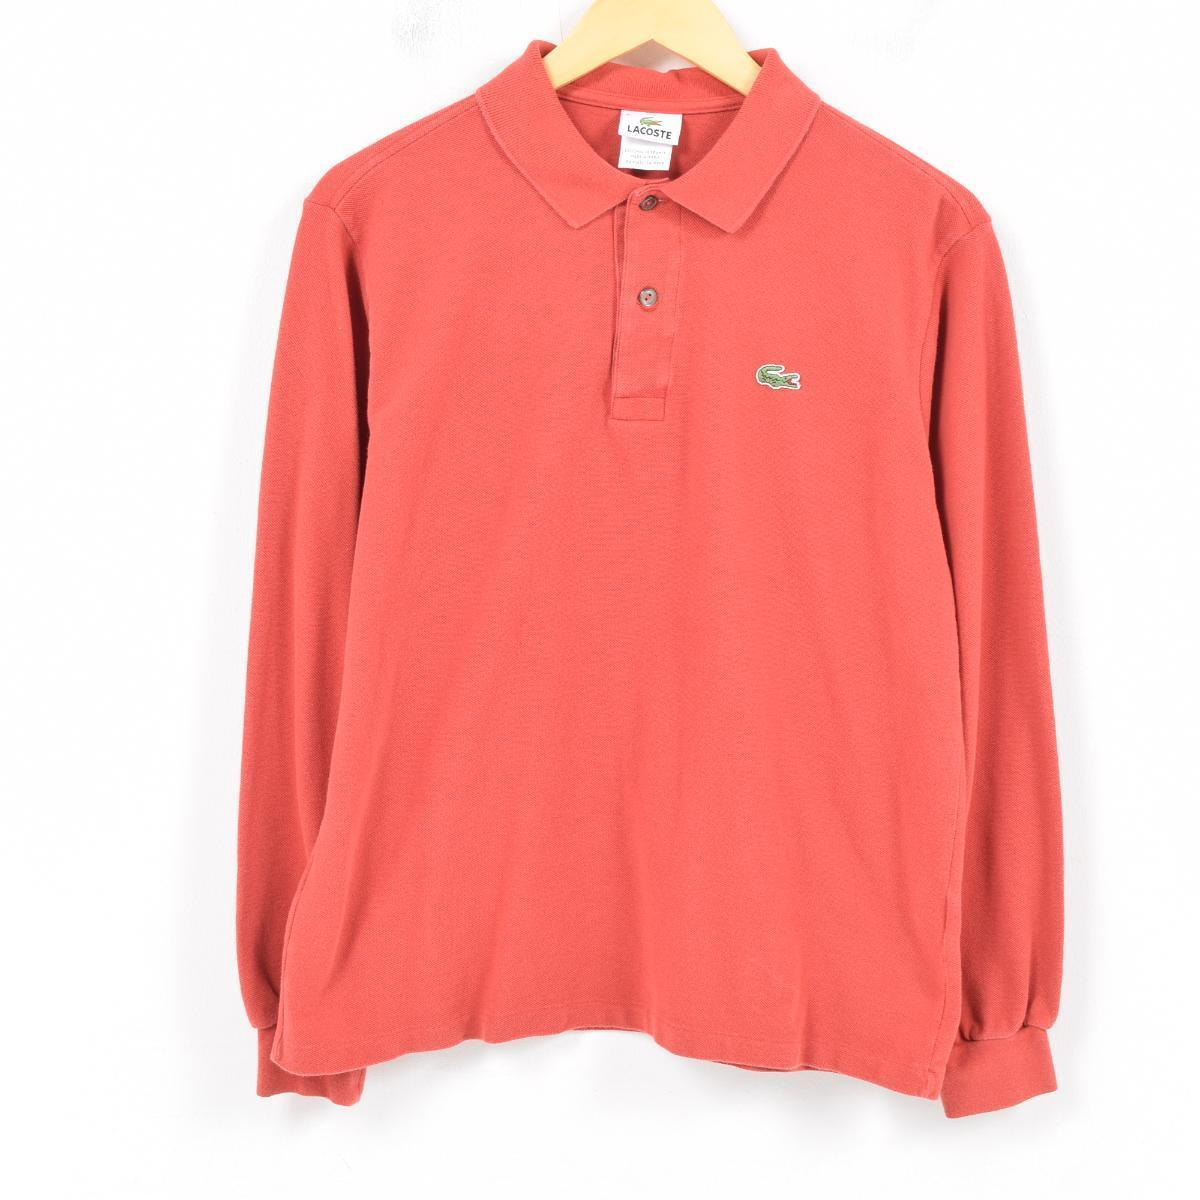 Vintage Clothing Jam Lacoste Lacoste France Plan Long Sleeves Polo